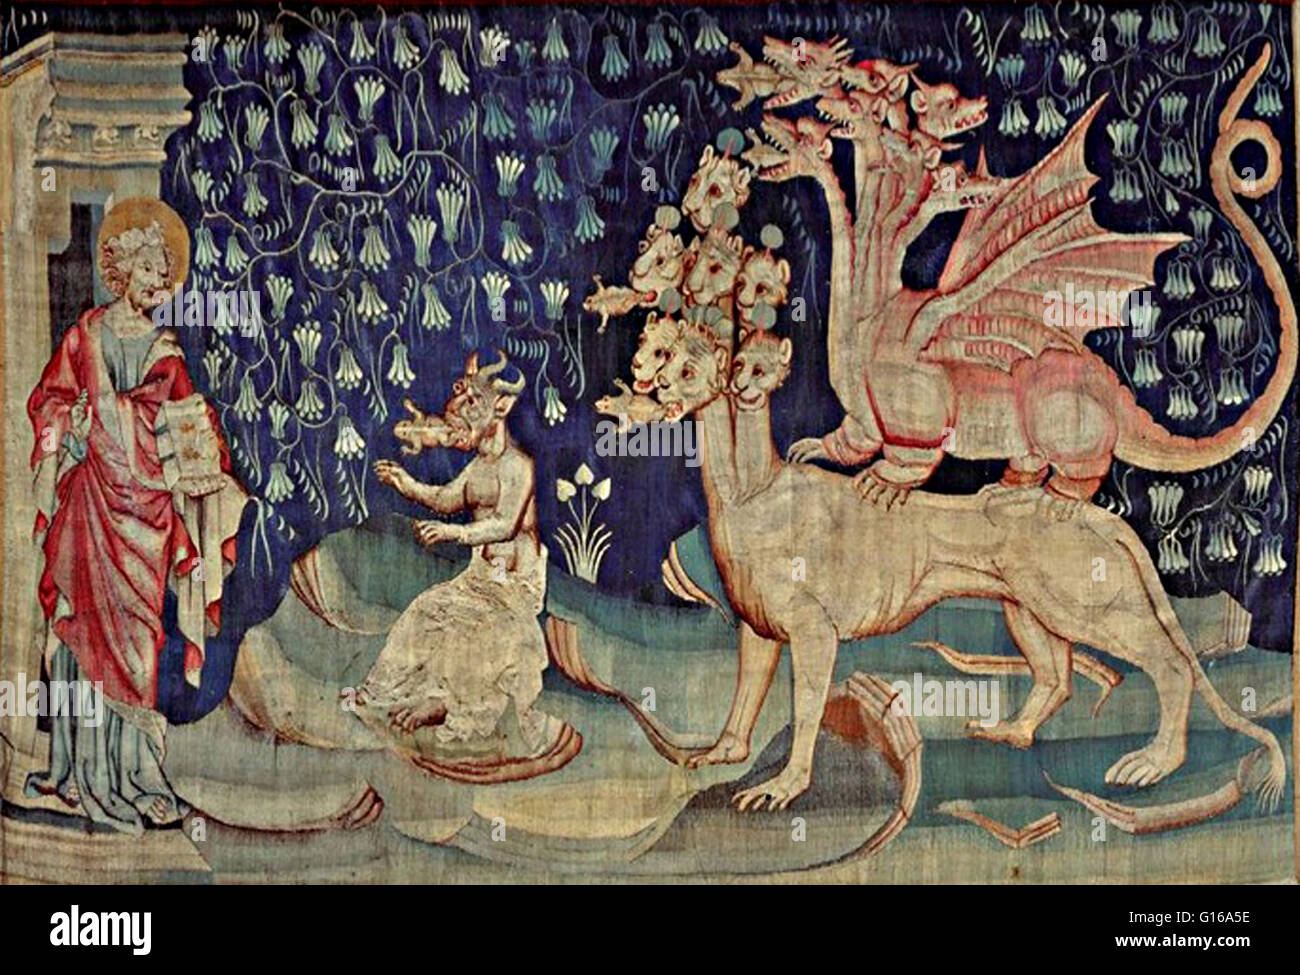 Tapisserie de l'Apocalypse. A medieval tapestry of the False Prophet, the Dragon, and the Beast of the Sea. - Stock Image